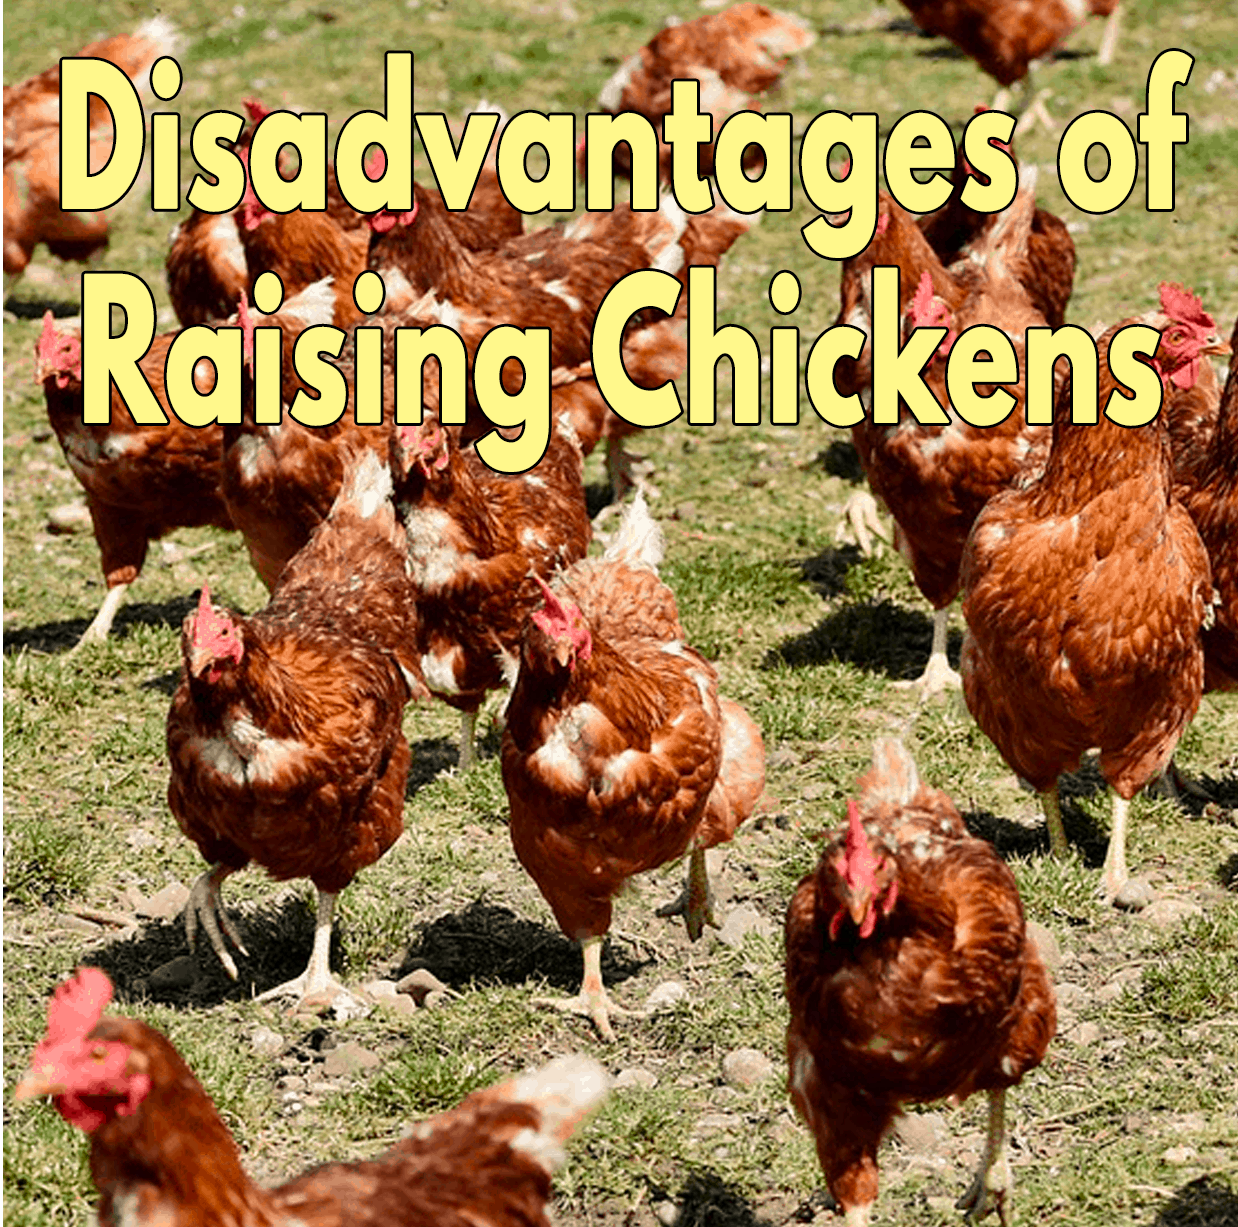 Disadvantages of Raising Chickens